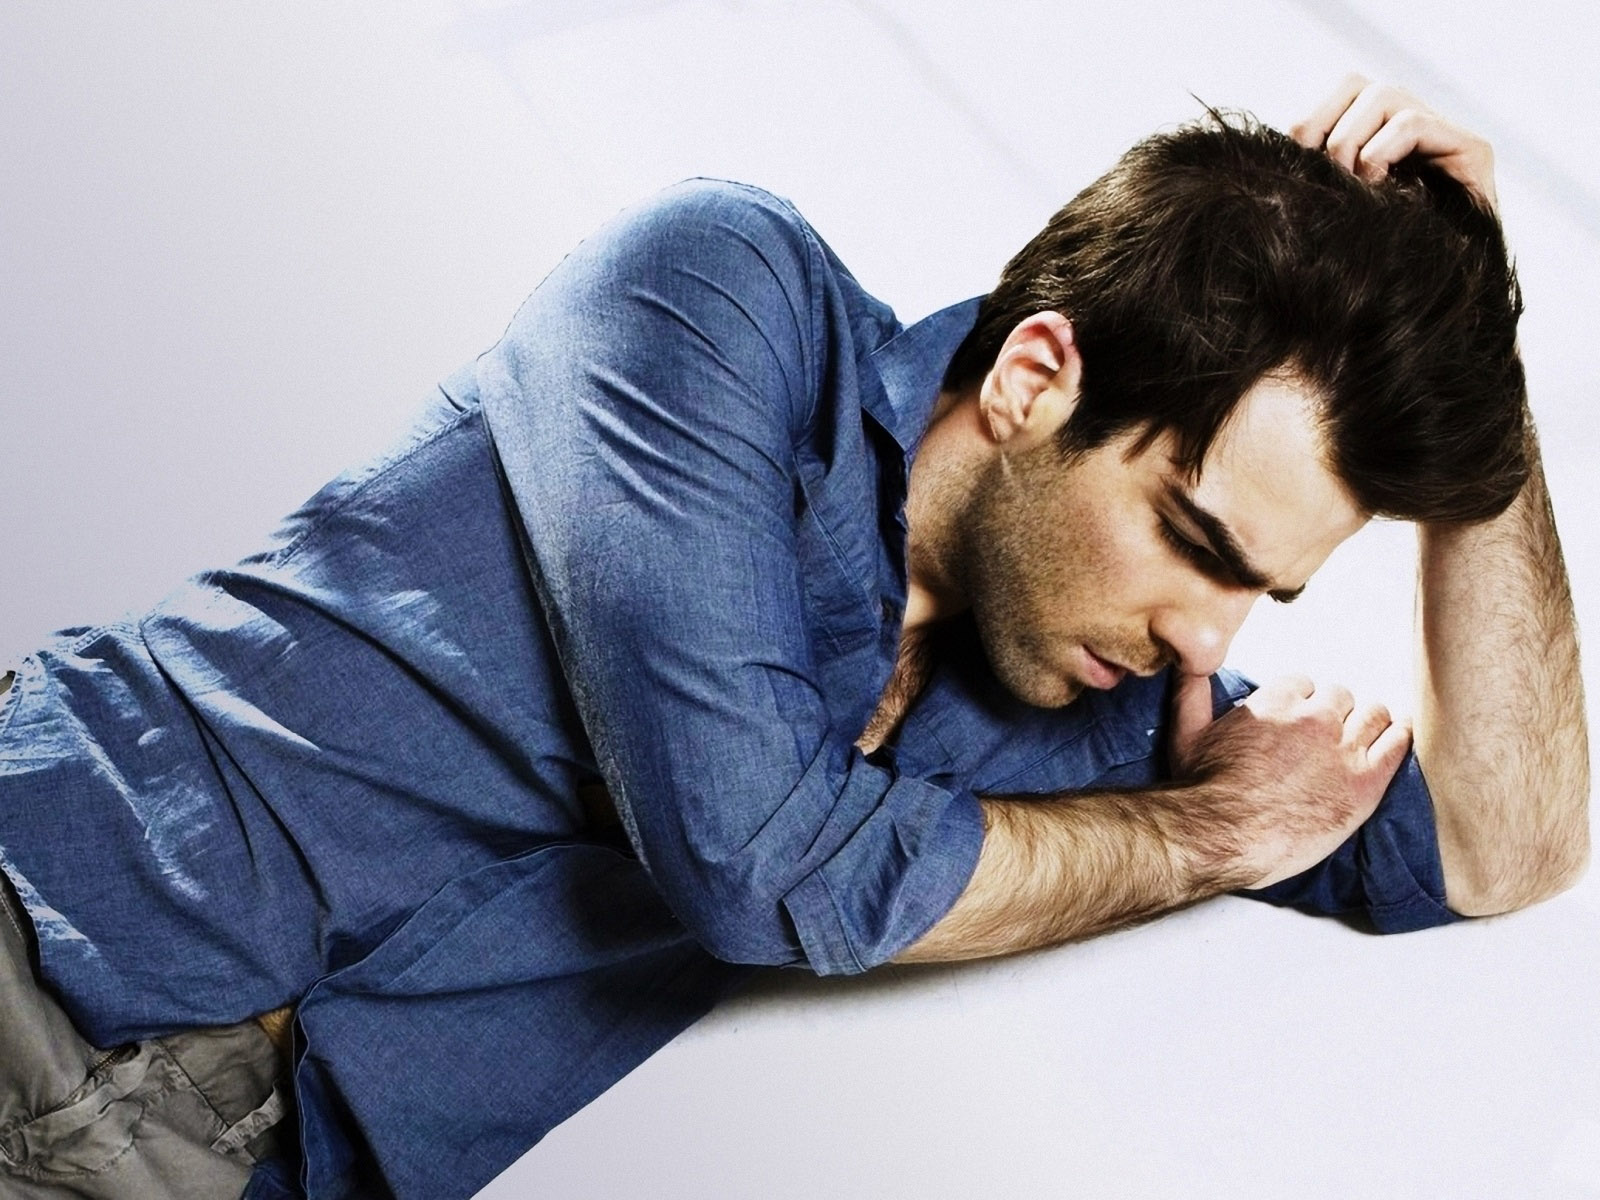 1600x1200 - Zachary Quinto Wallpapers 18